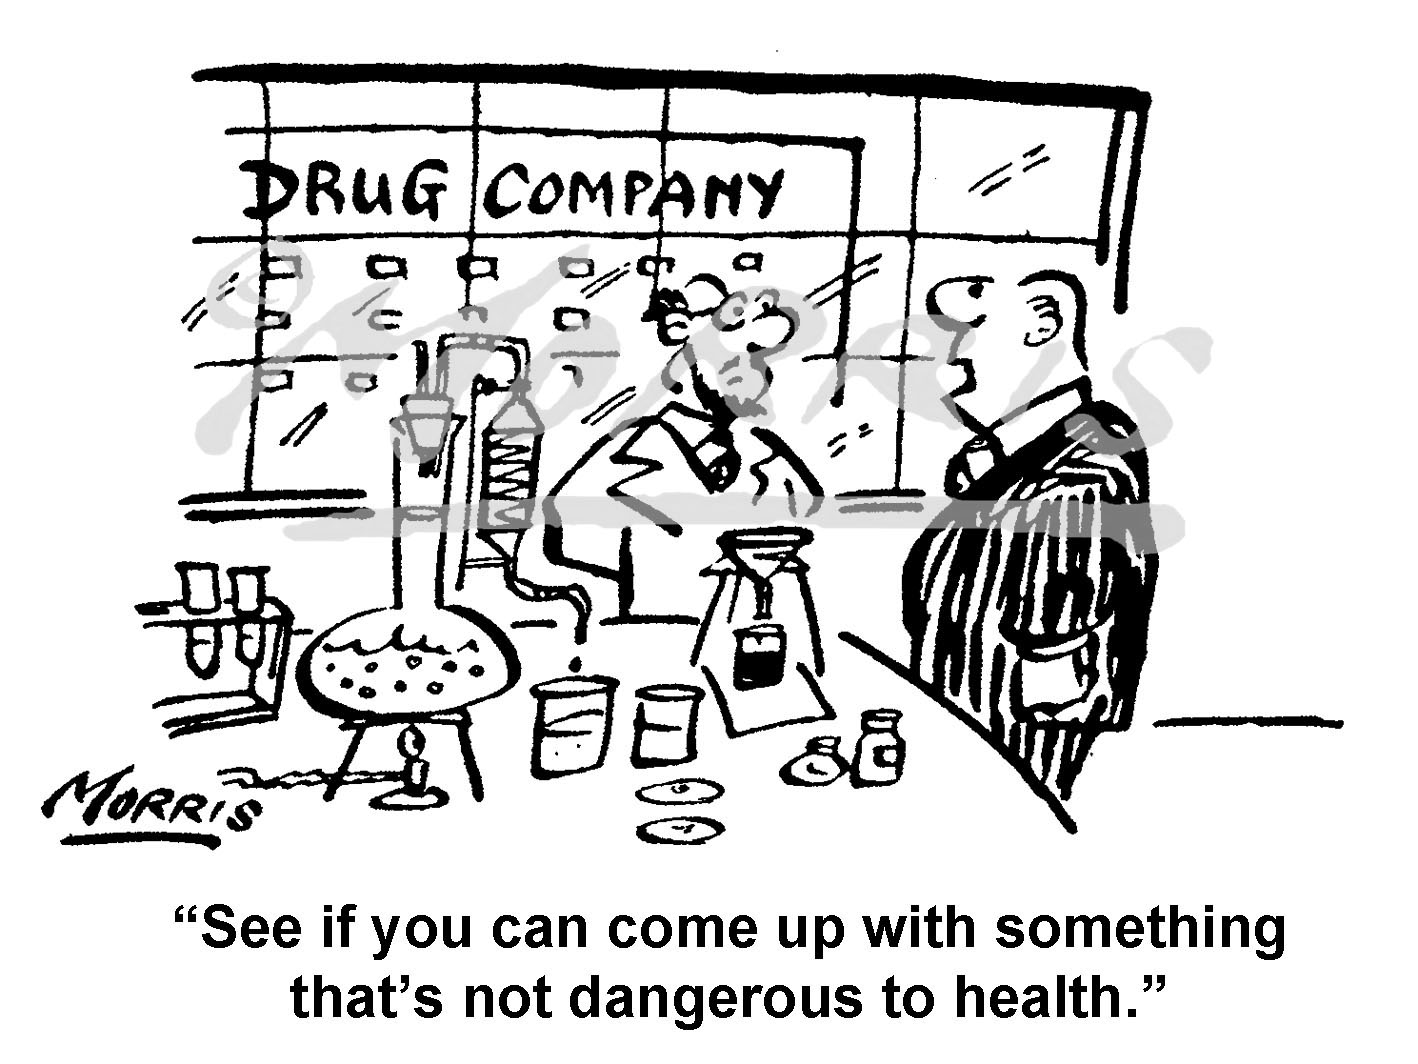 Drug company health cartoon – Ref: 5000bw